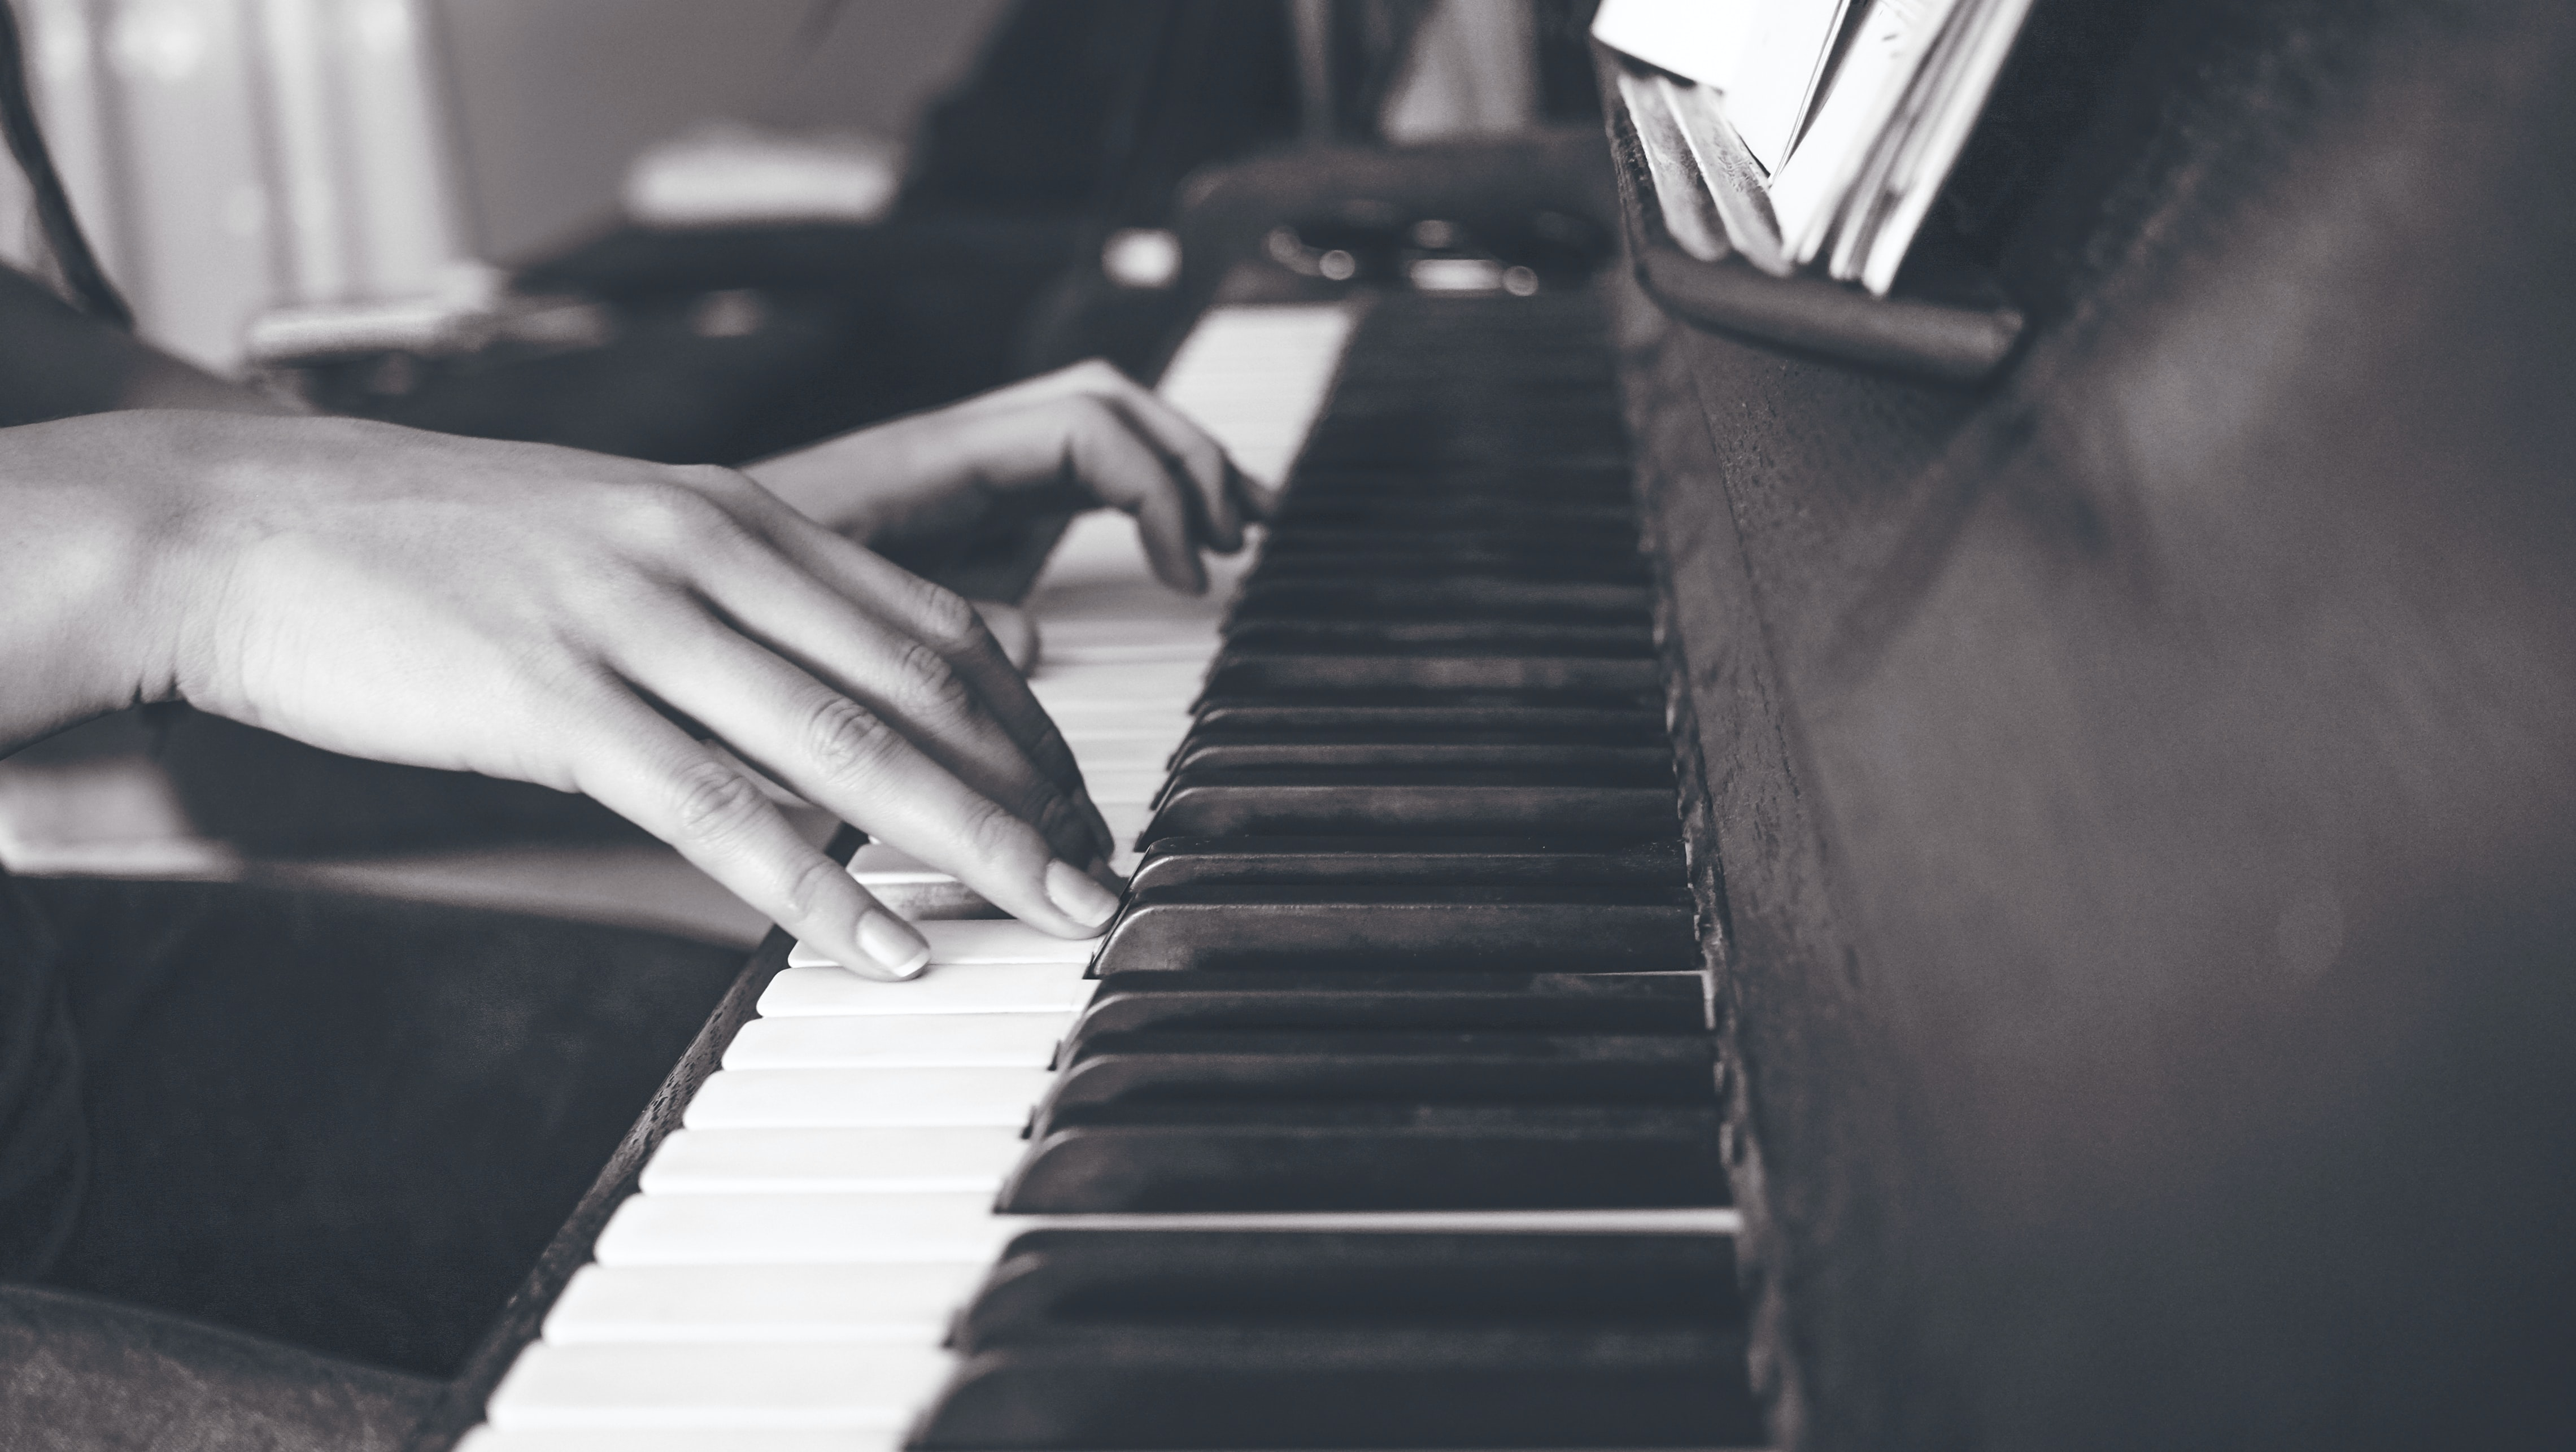 person playing upright piano in sephia photography